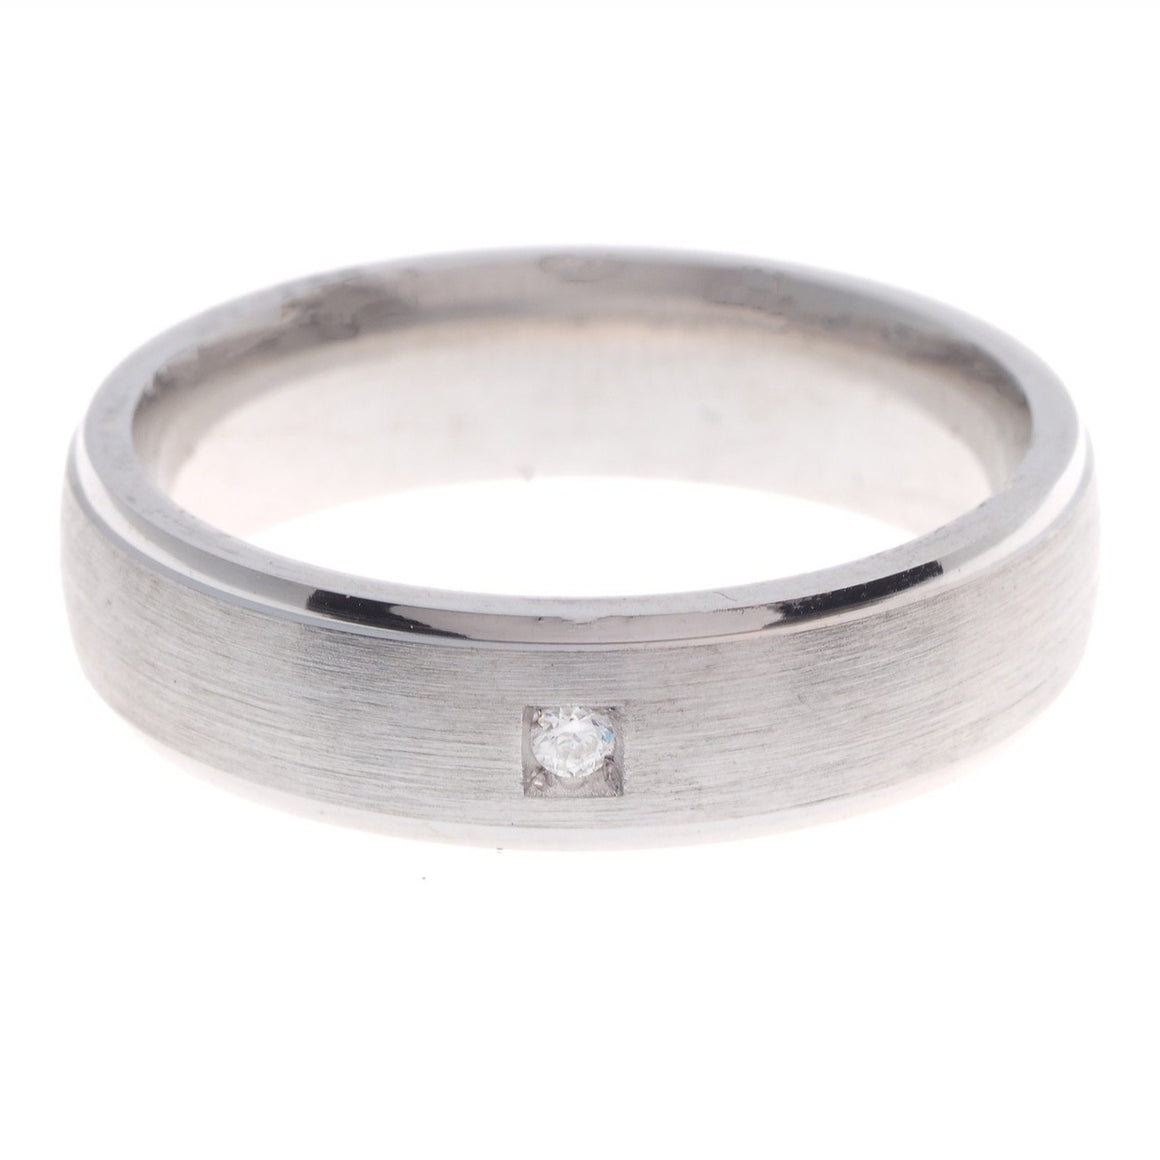 Sterling Silver Gents Wedding Band set with a Cubic Zirconia Stone